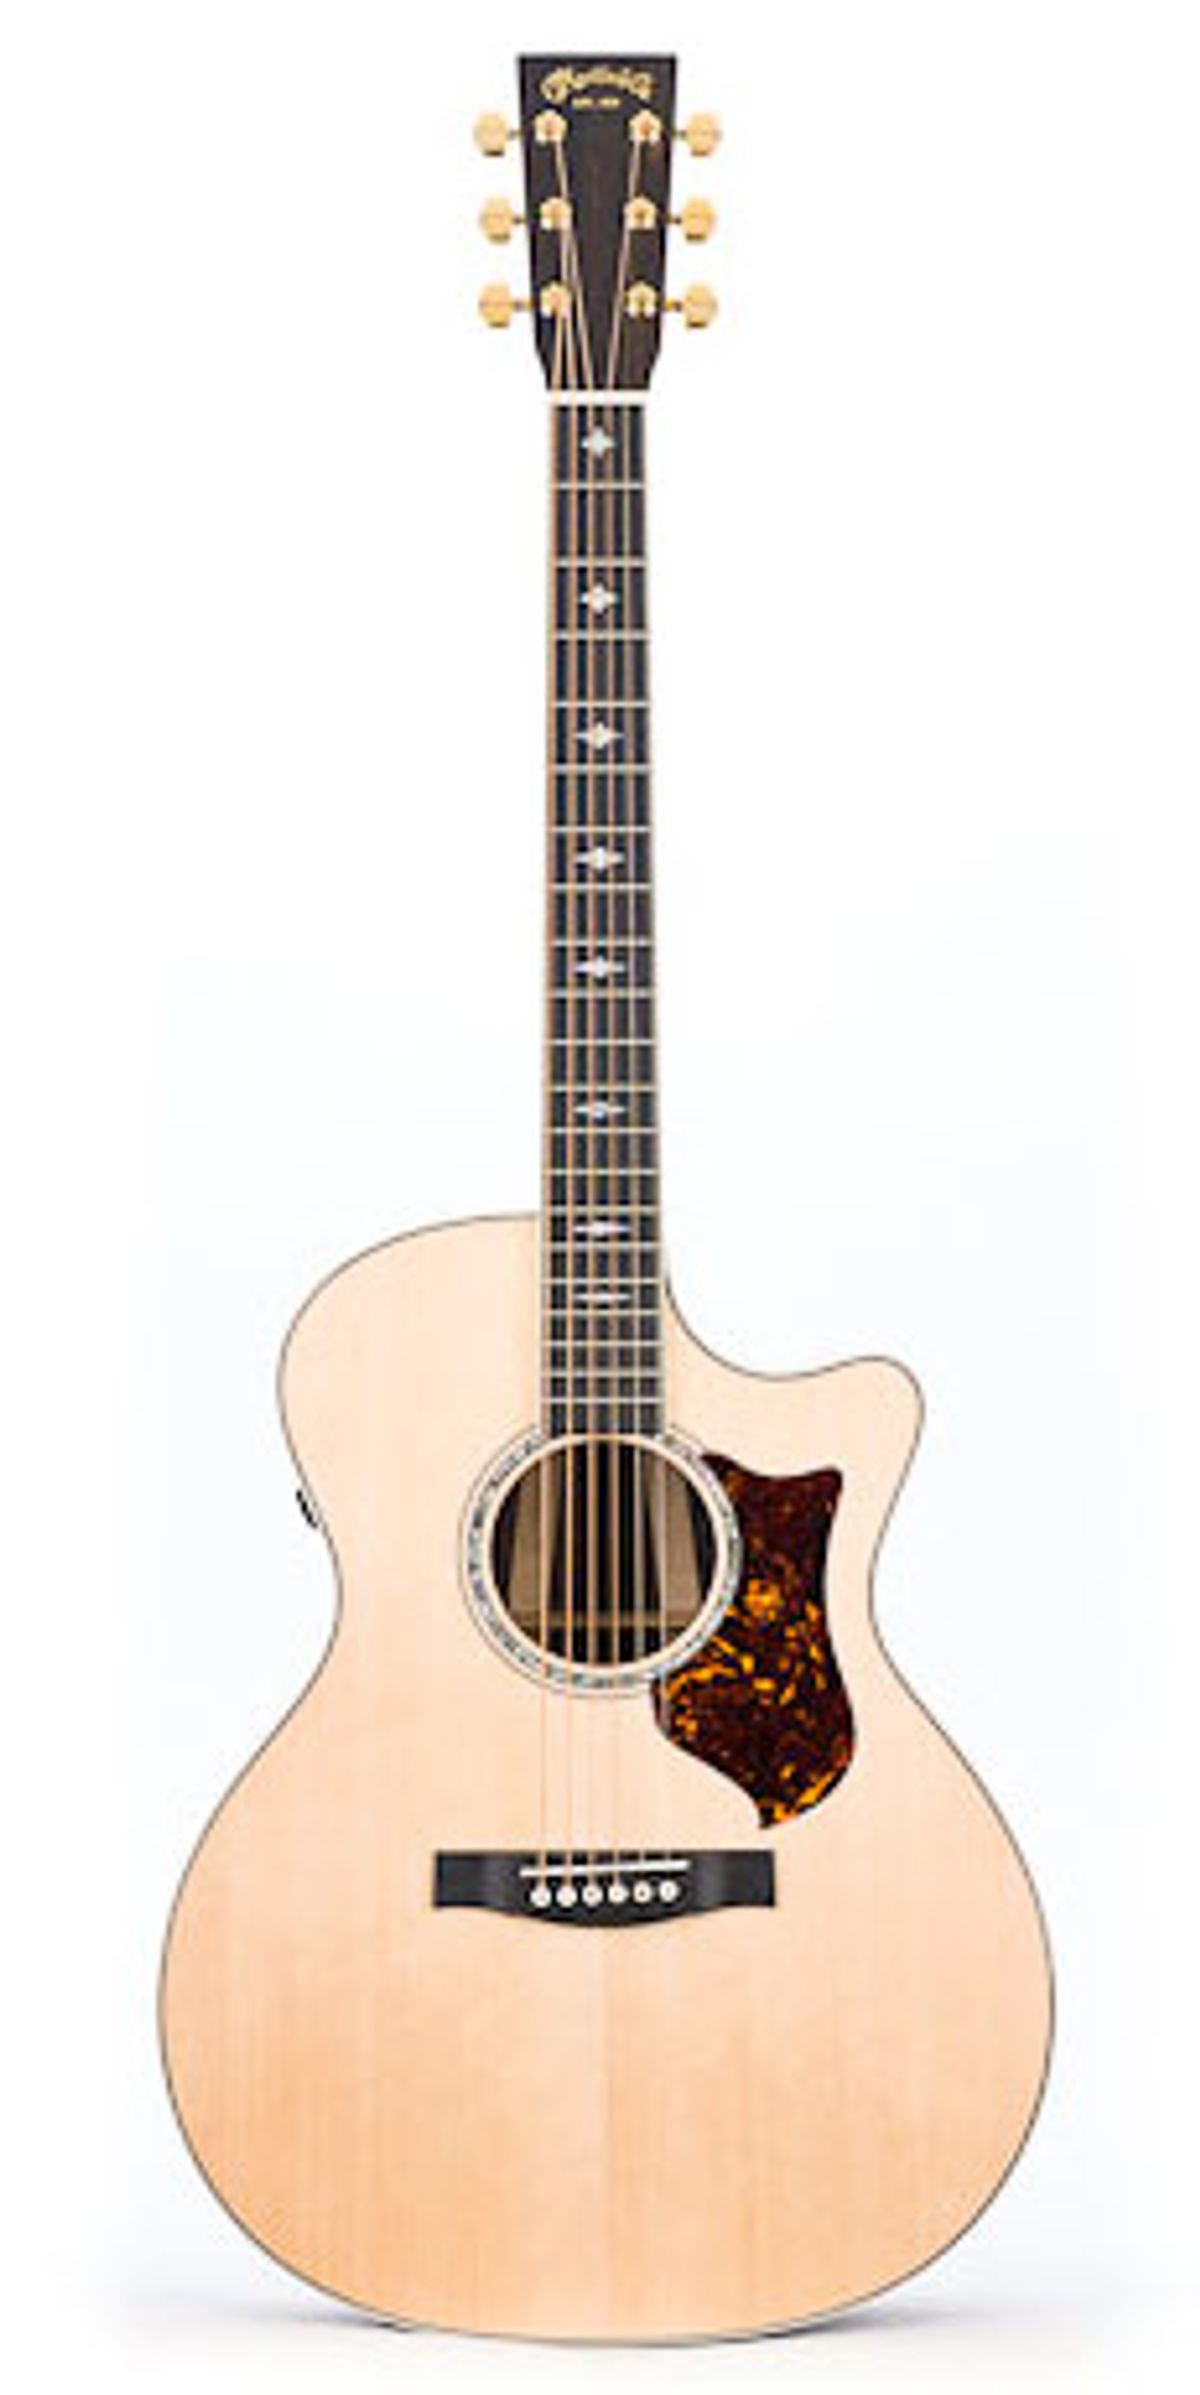 Martin Expands Performing Artist Series With Five New Models